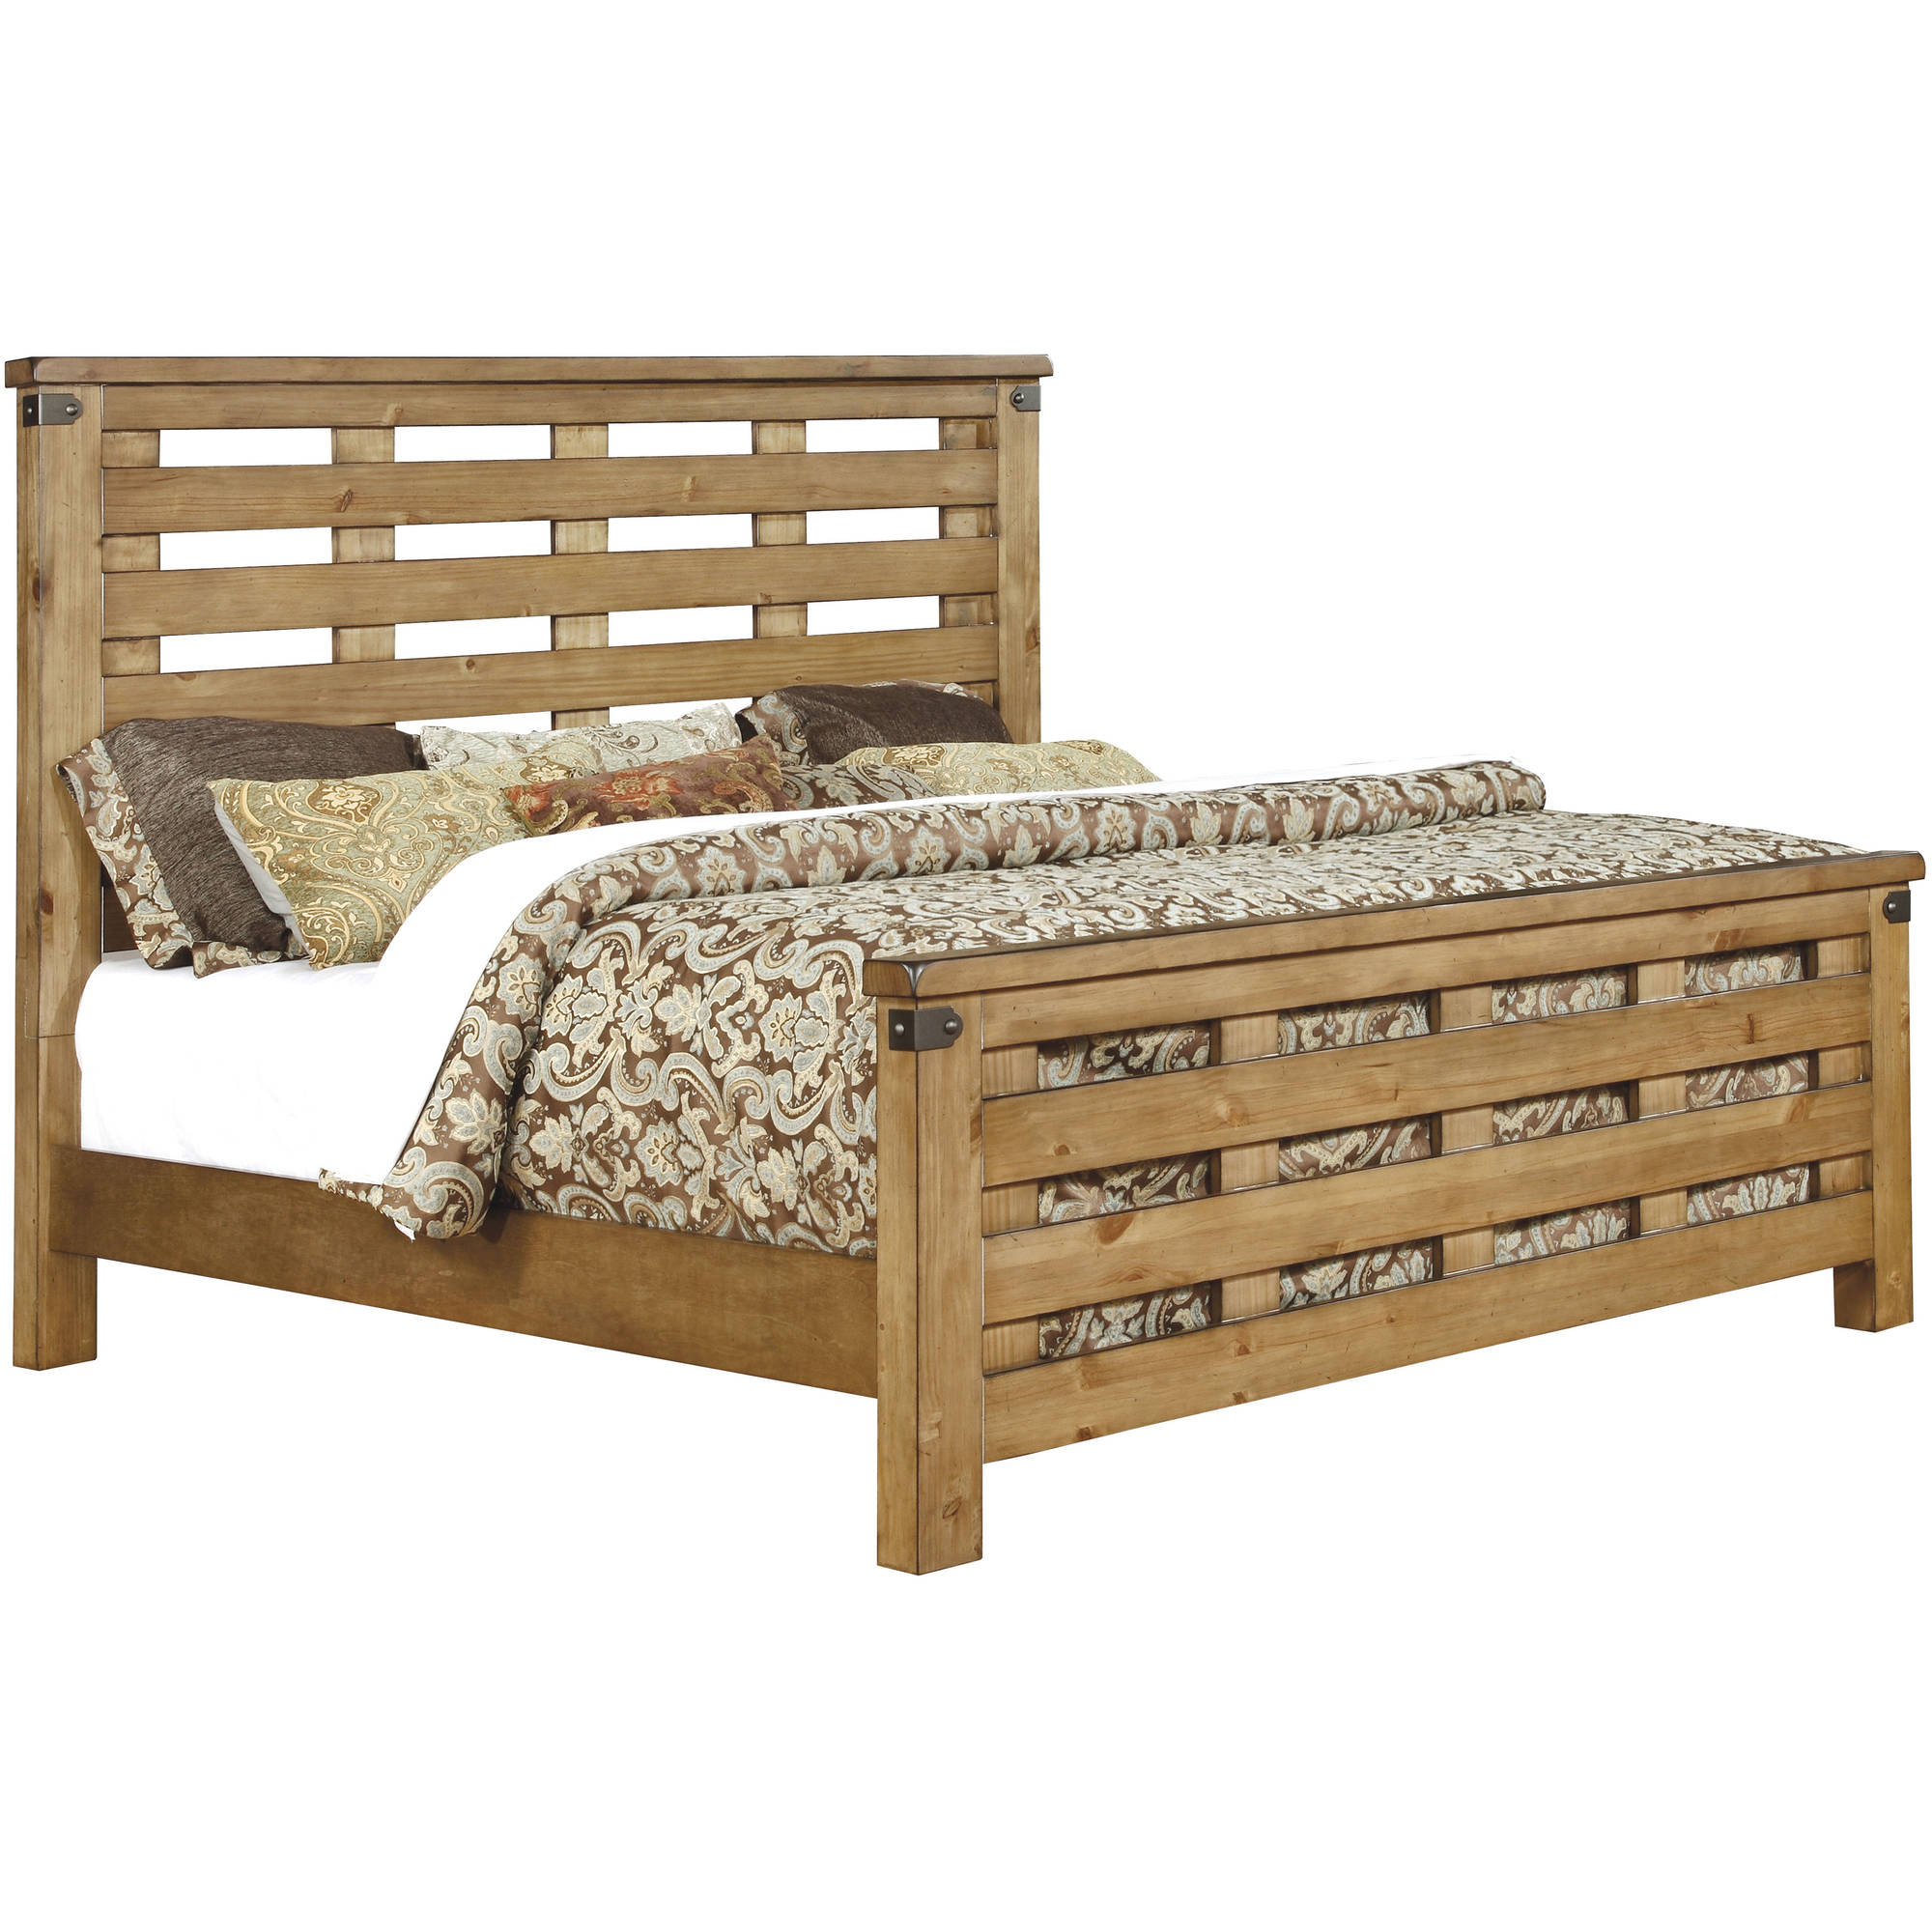 Furniture of America Moira I Cottage California King Bed, Weathered Elm